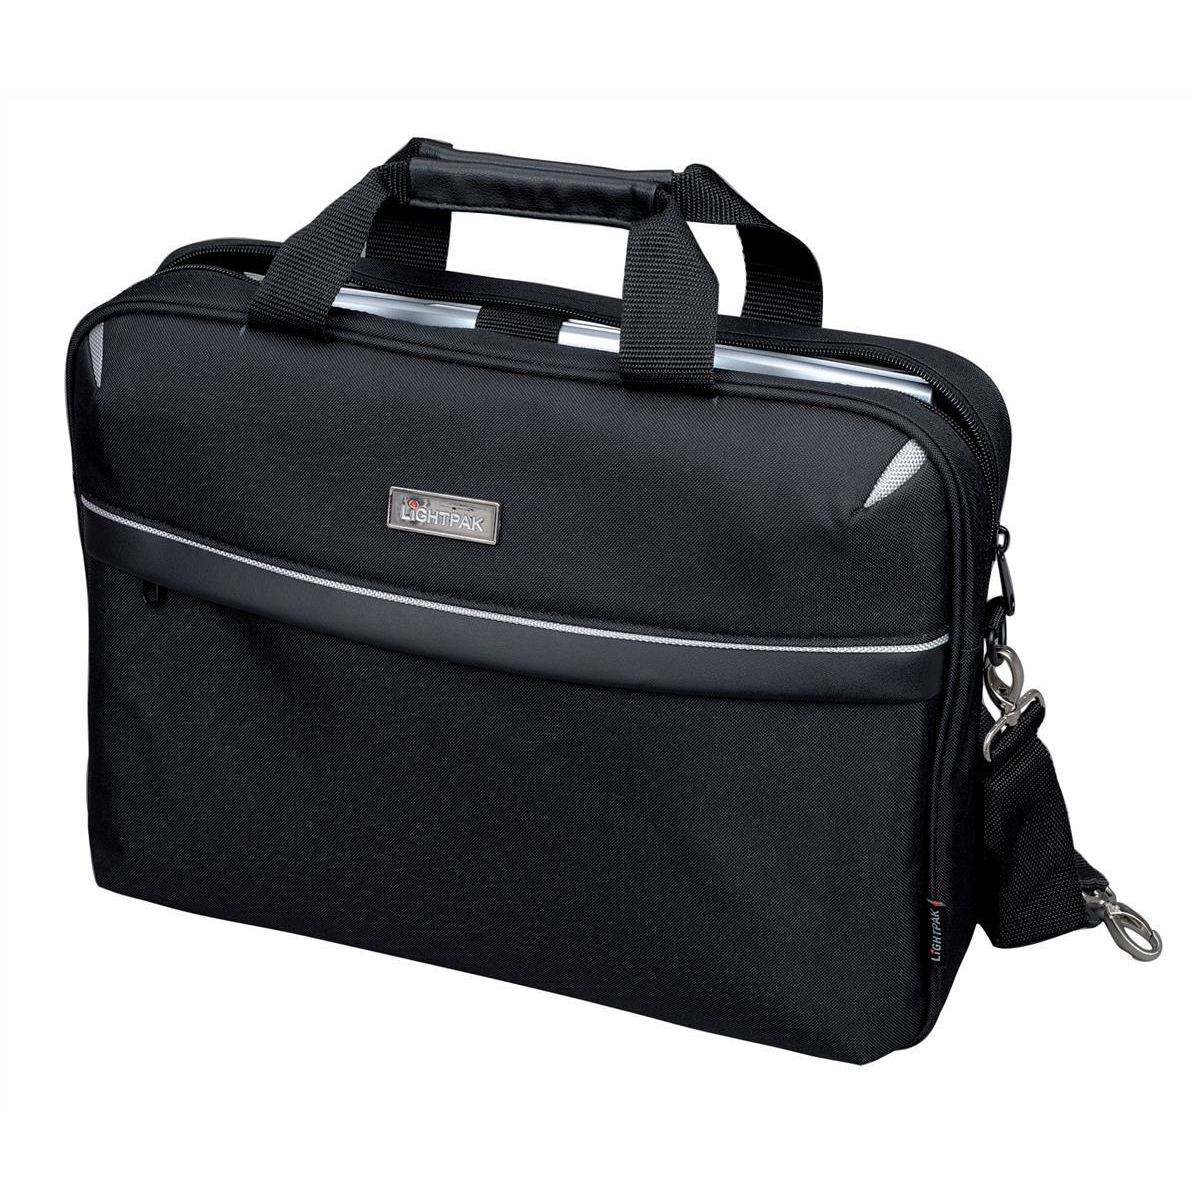 Briefcases & Luggage Lightpak Laptop Bag Top Load with 15in Laptop Compartment Nylon Black Ref 46112